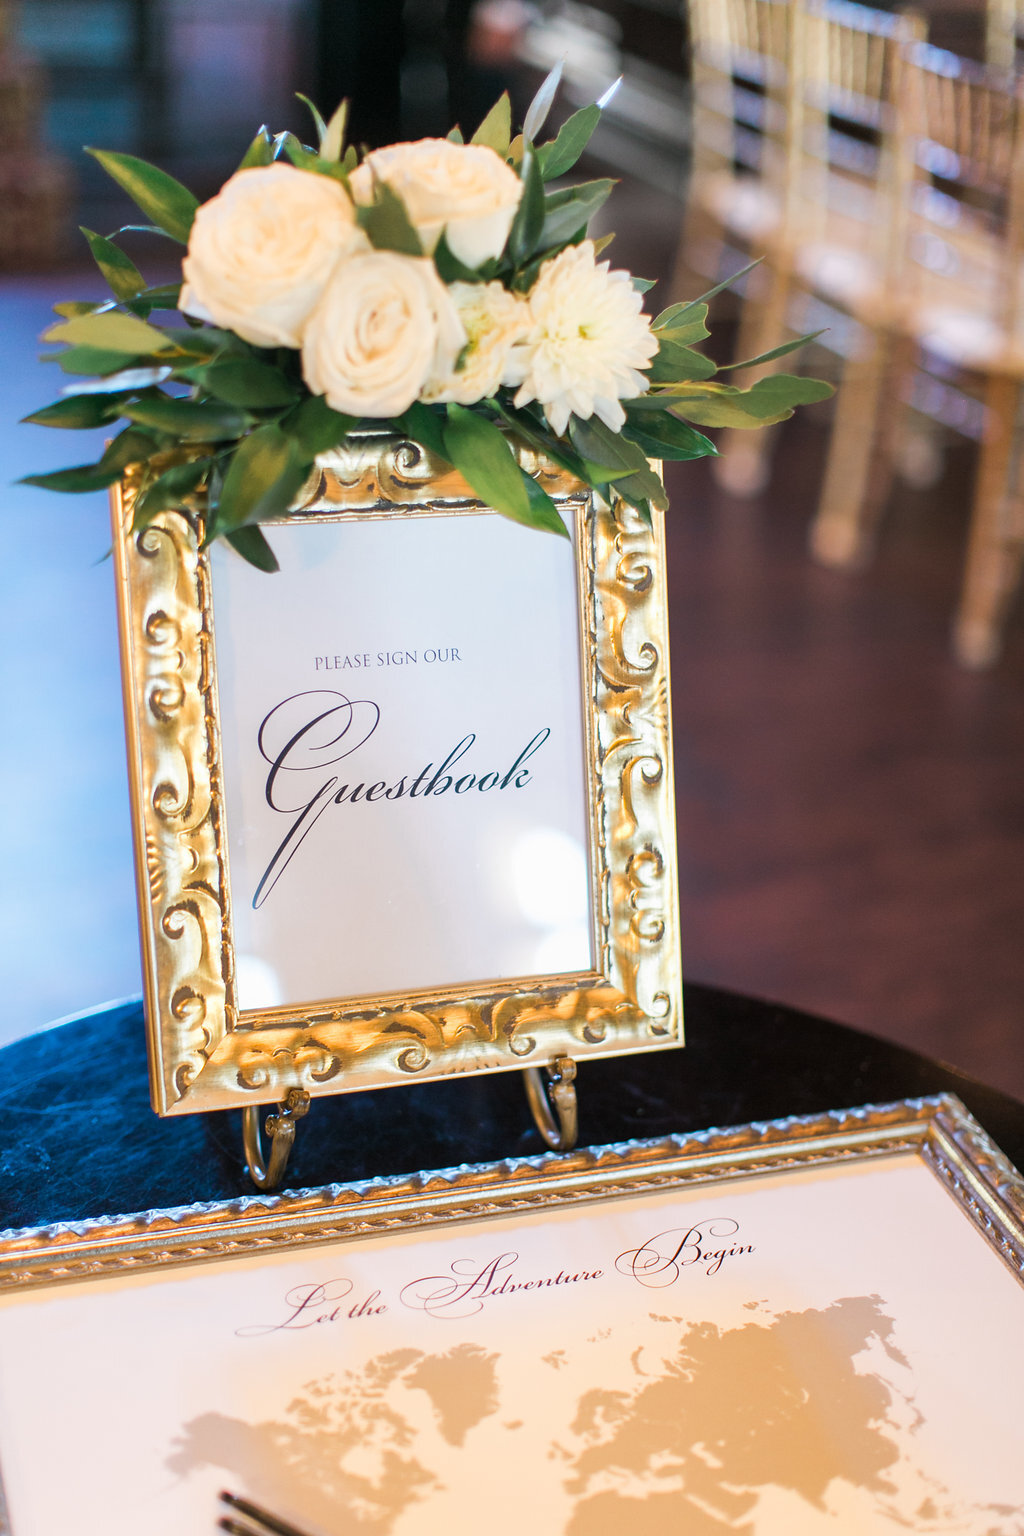 Guestbook Sign Gold Frame Floral Decor Champagne Press Wedding Day Paper Goods